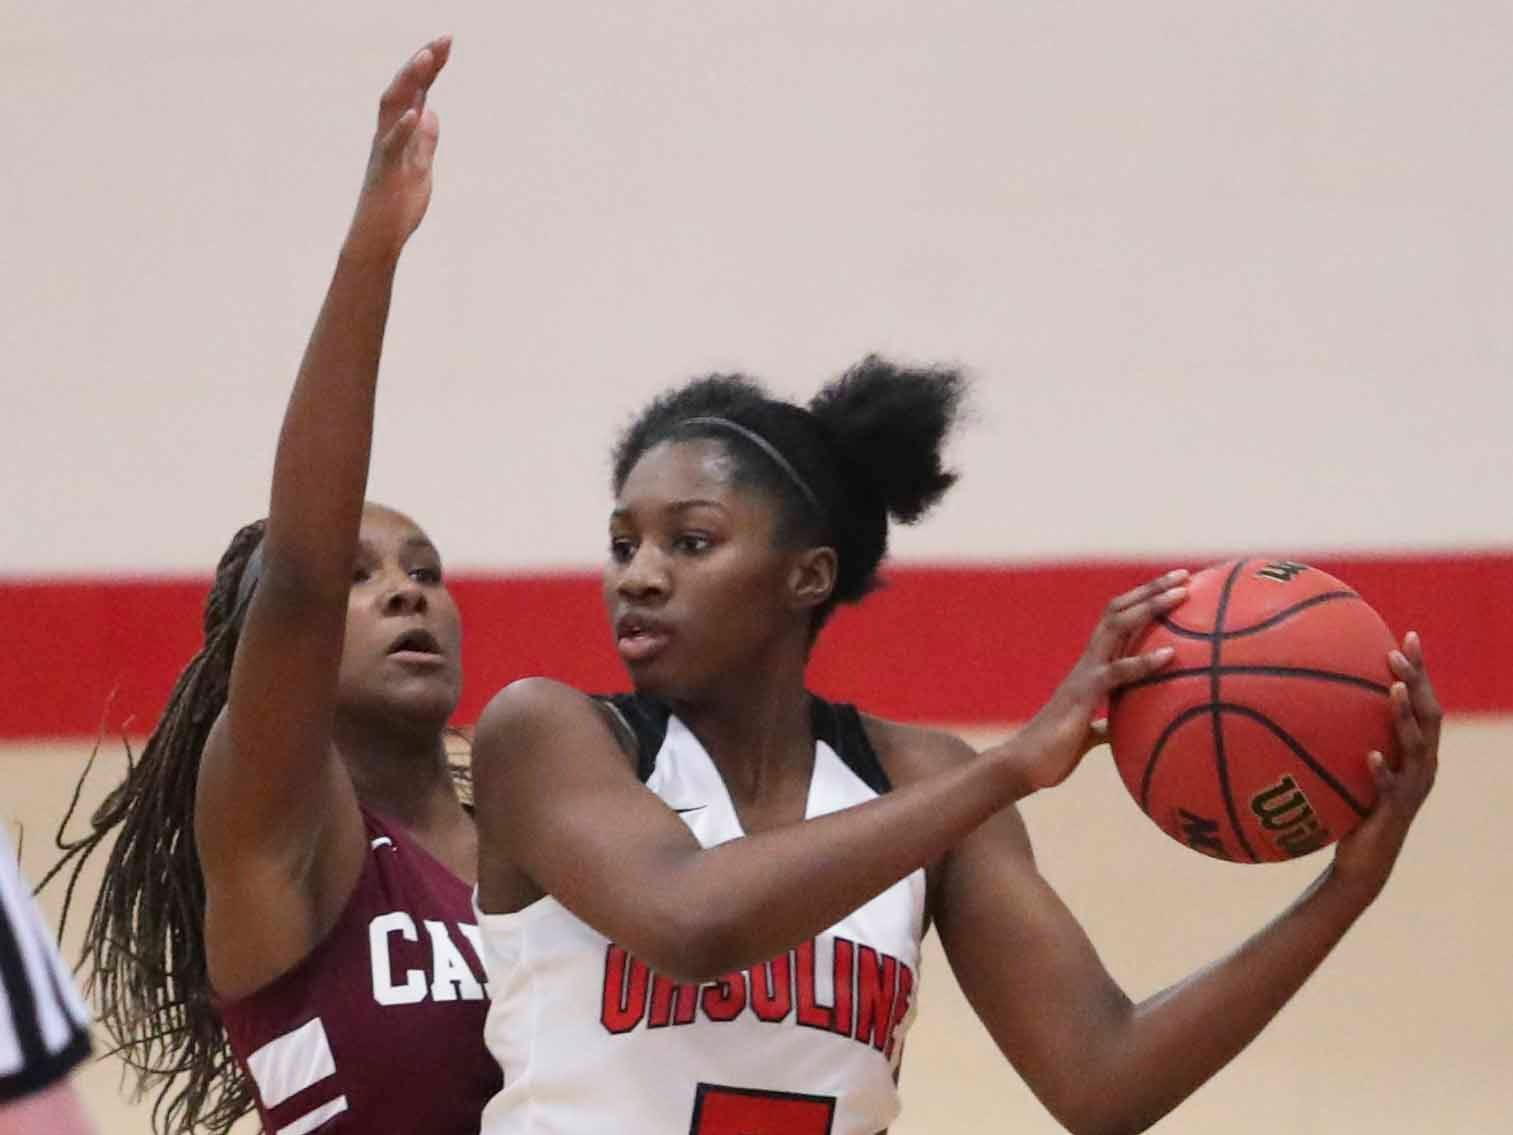 Ursuline's Kayounor Wulah (5) keeps the ball away from Caravel's Sasha Marvel in the Bucs' 42-31 win at Ursuline Wednesday.